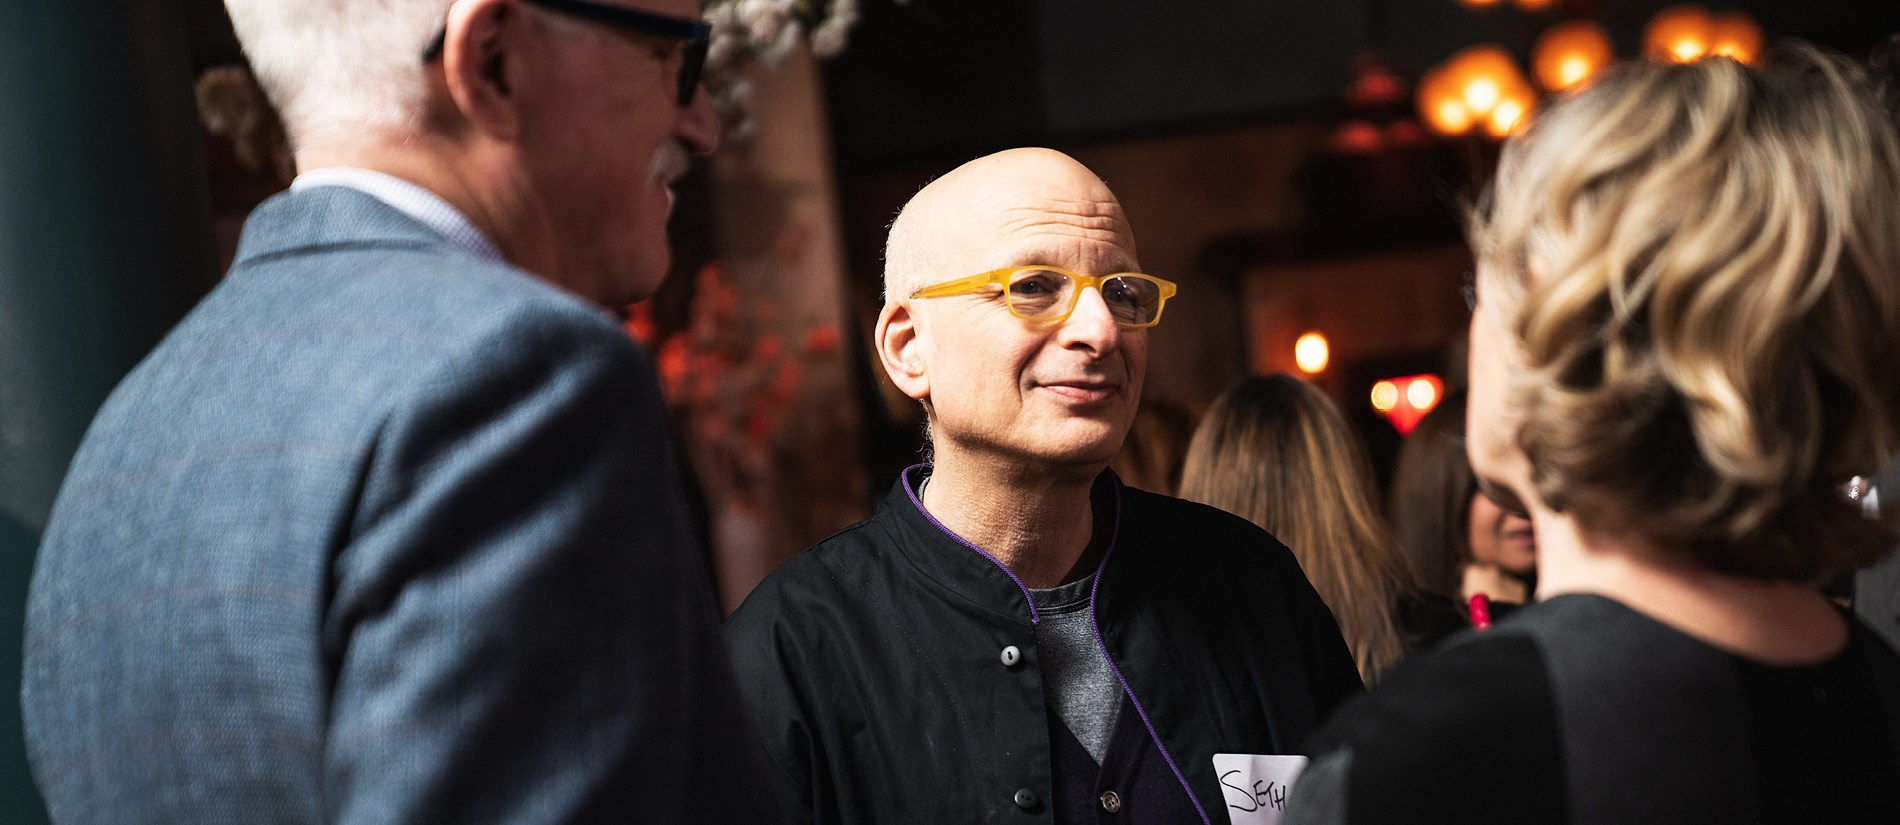 Jack Covert, Seth Godin, and Carol Grossmeyer